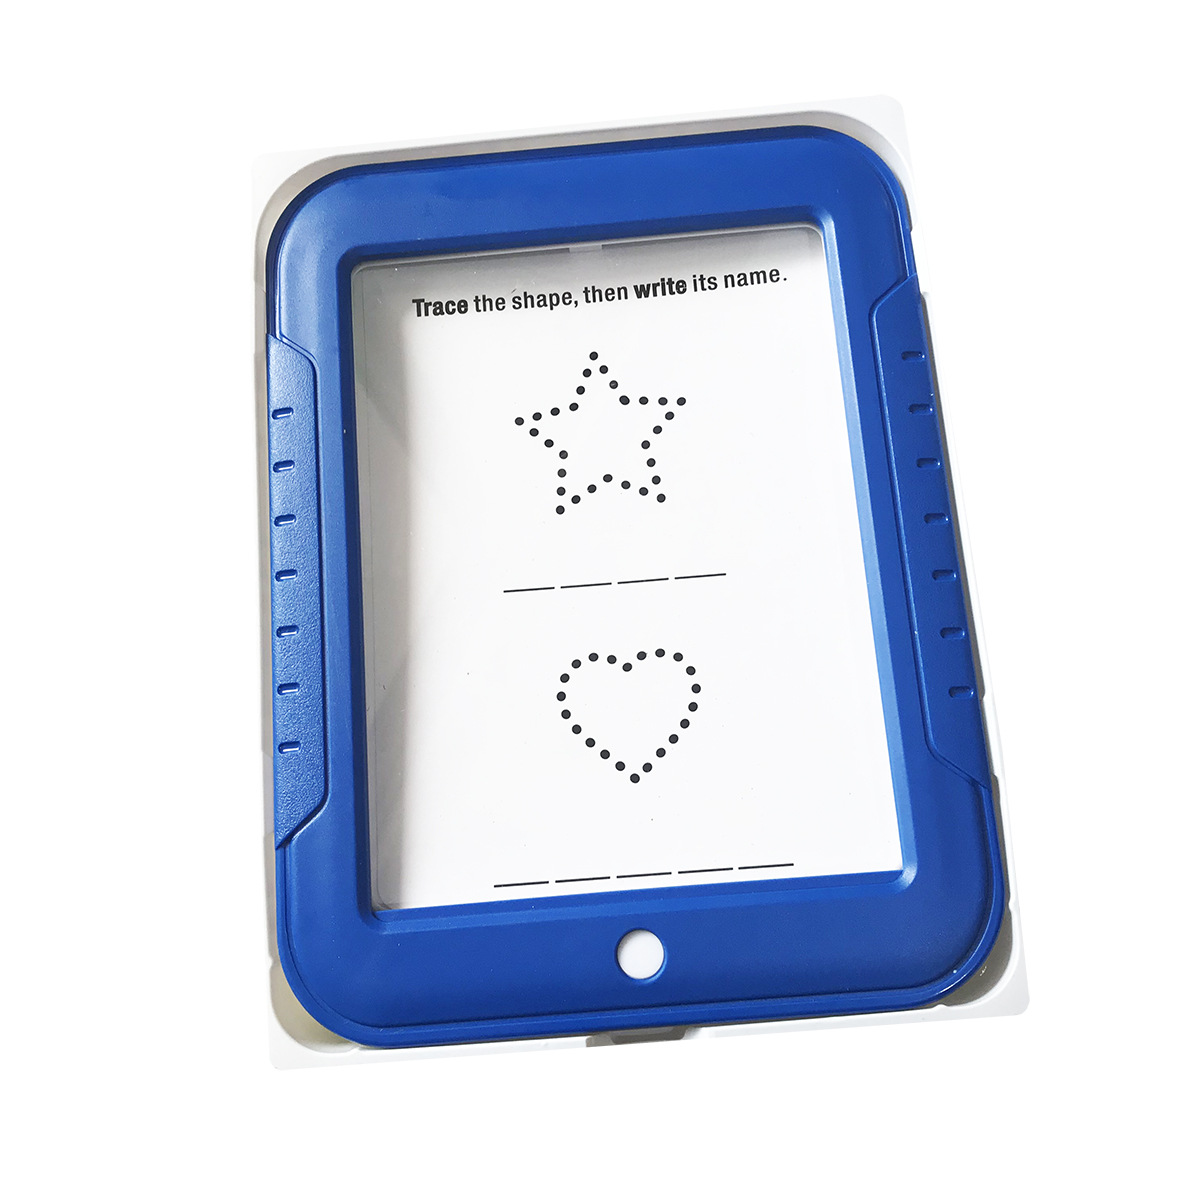 3D Magic Drawing Pad Yi Children'S Educational Sketchpad Light Included Magic 3D Drawing Board